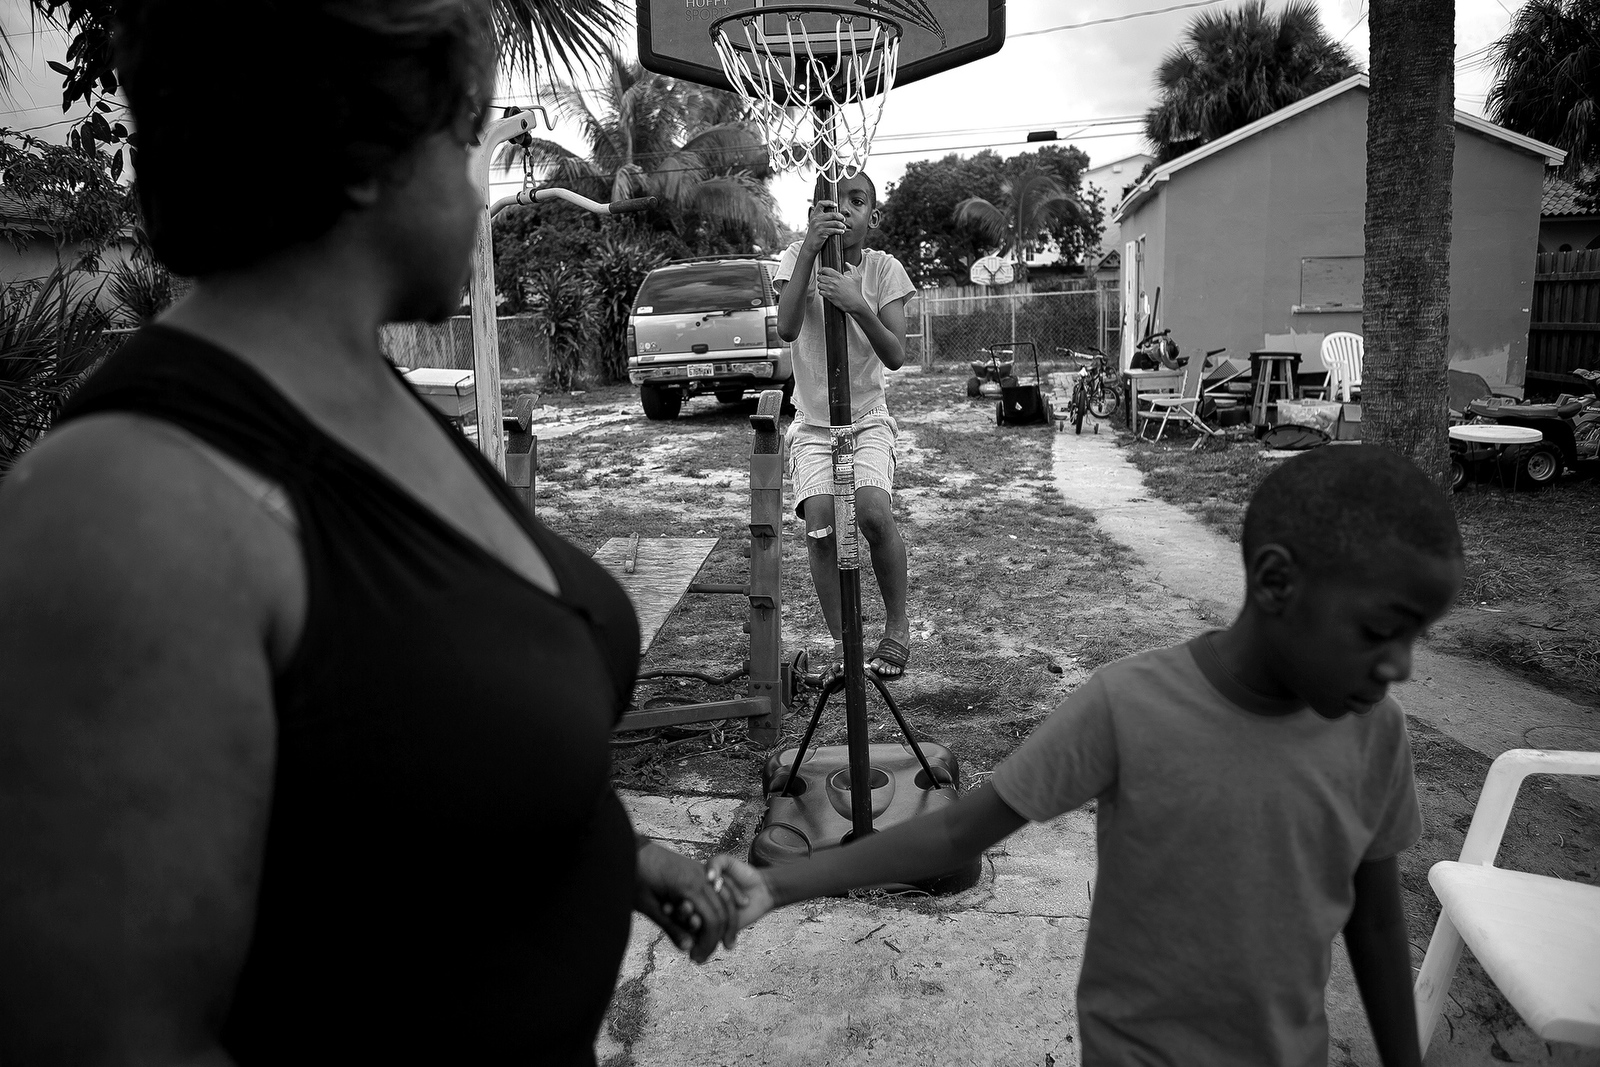 Omari Tripp, 8, climbs up the basketball hoop in his backyard as his brother Odarius, 6, pulls their mother Angeline back inside. Both Omari and Odarius have severe autism and require nearly constant supervision.